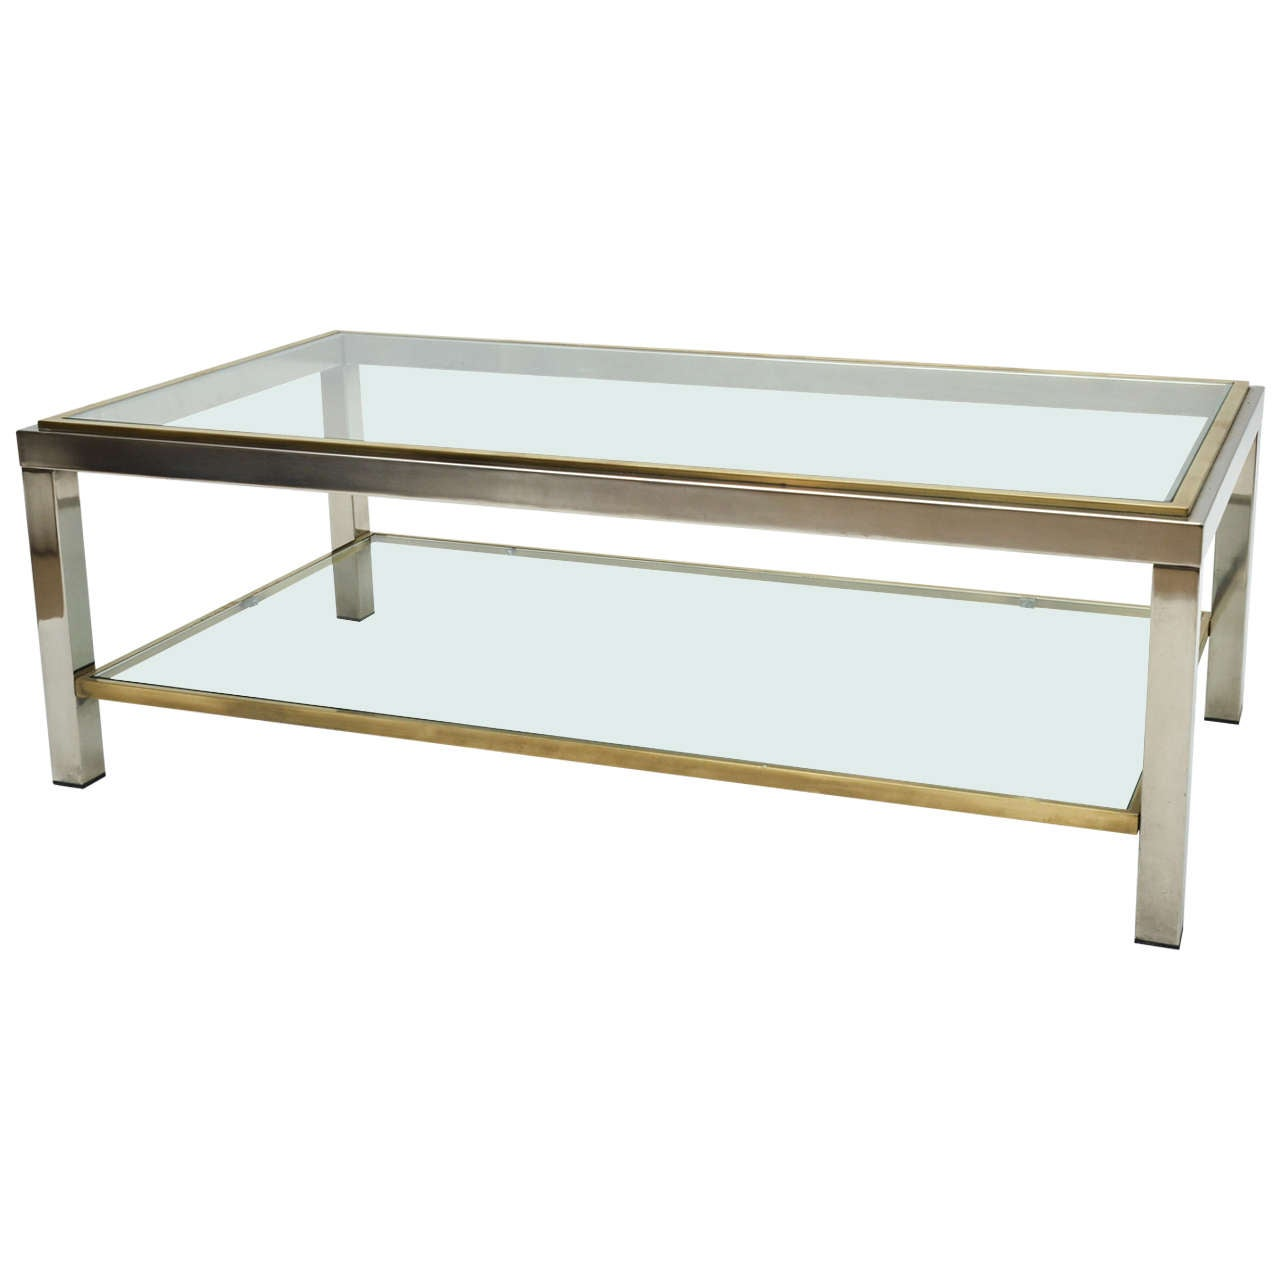 Mid century modern french brass and chrome glass coffee for Mid century modern coffee table